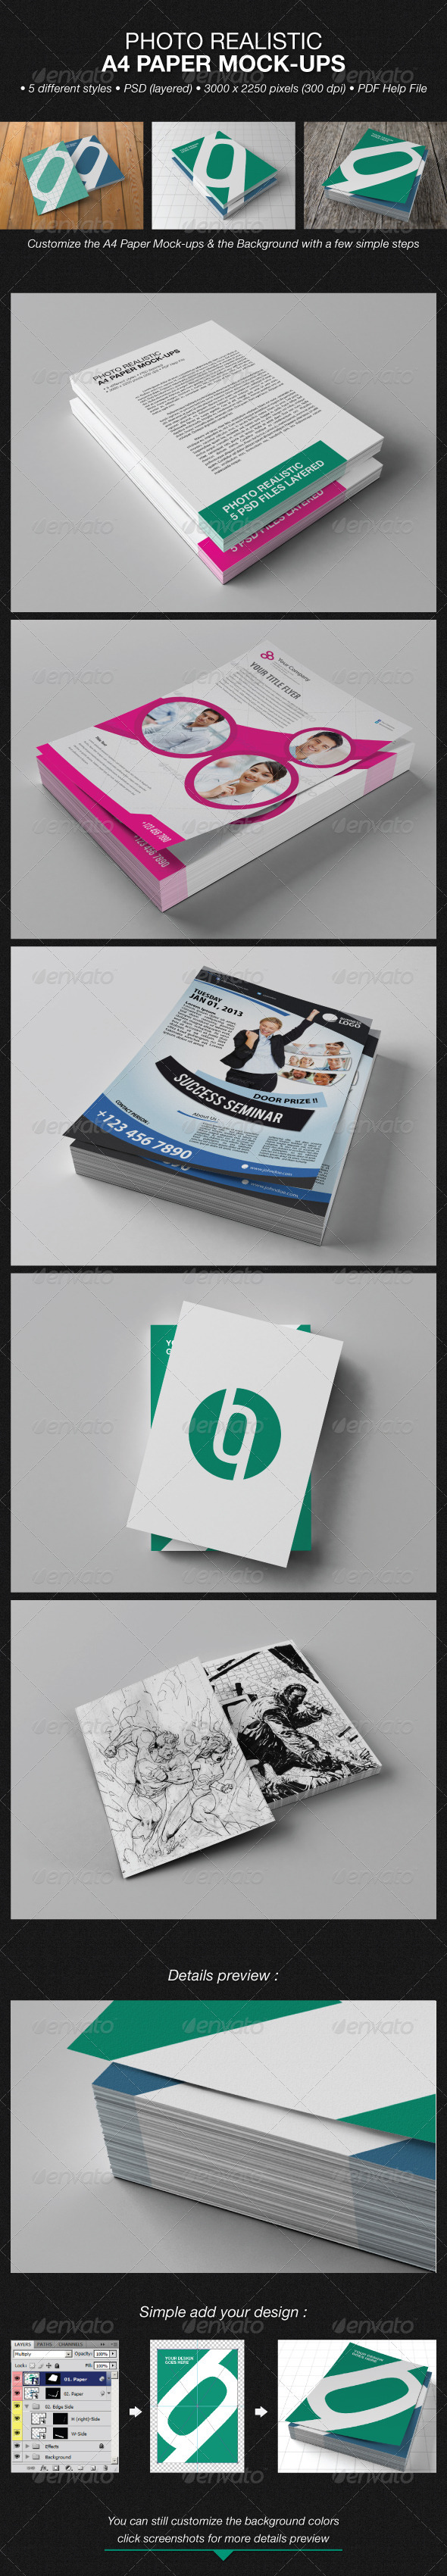 Photo Realistic A4 Paper Mock-Ups - Flyers Print